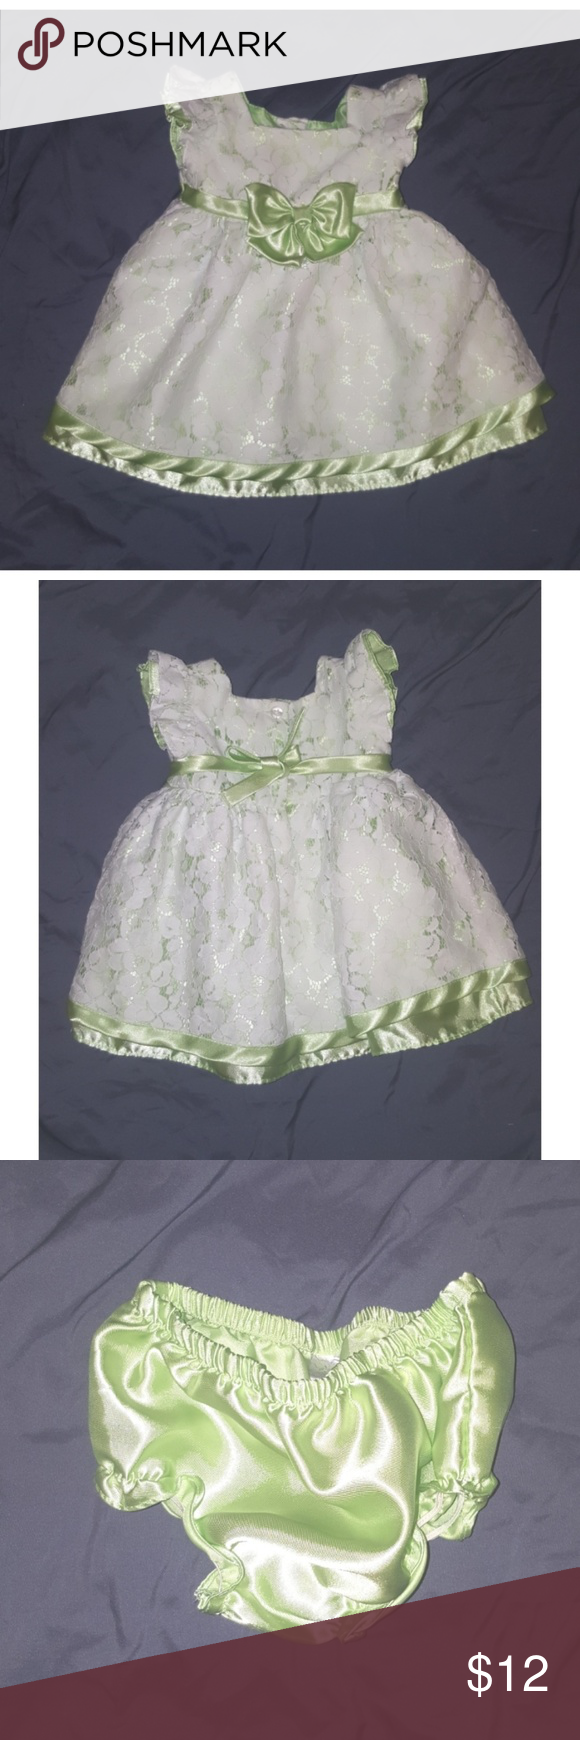 Green dress with lace overlay  Baby Girl Party Dress w Lace Overlay EUC Koala Baby Girl lime green